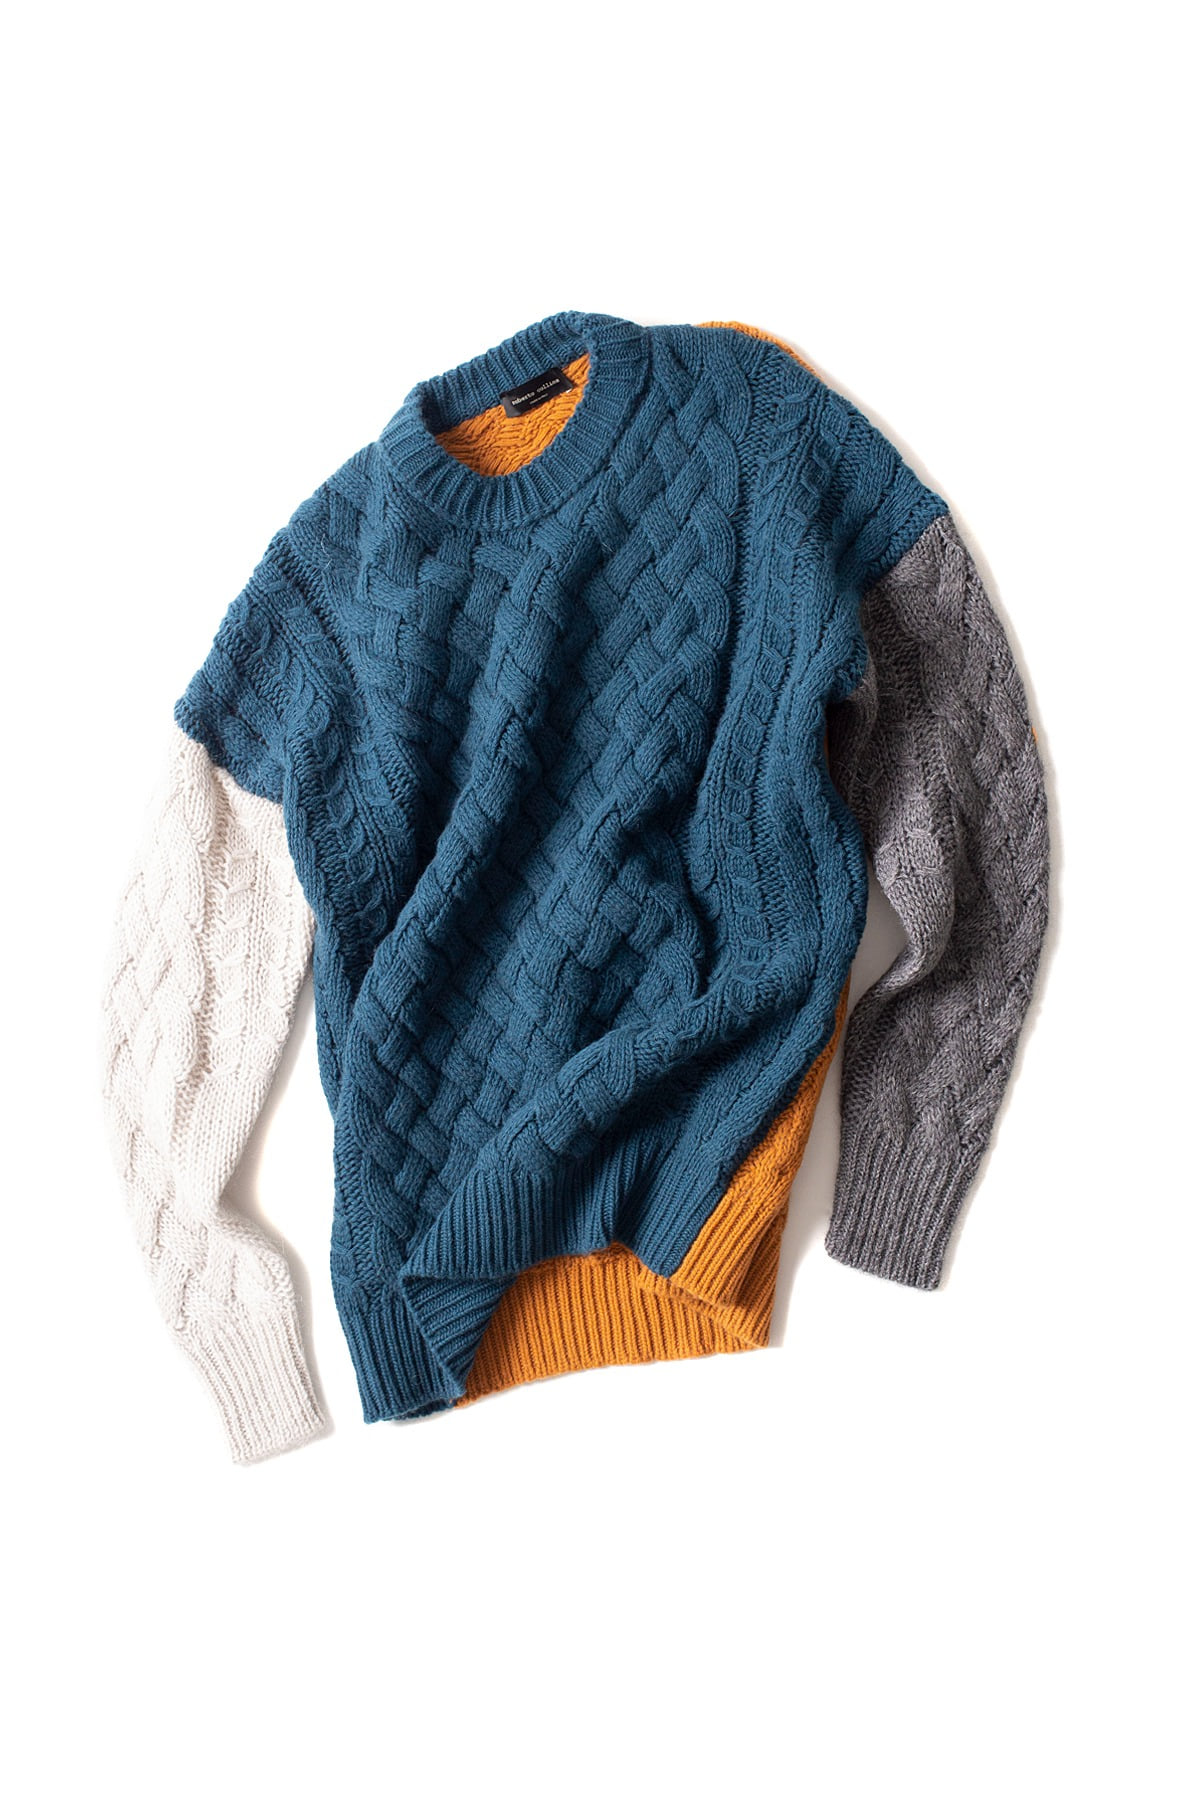 roberto collina : L/S Knit Cable Round Neck (Blue Green)